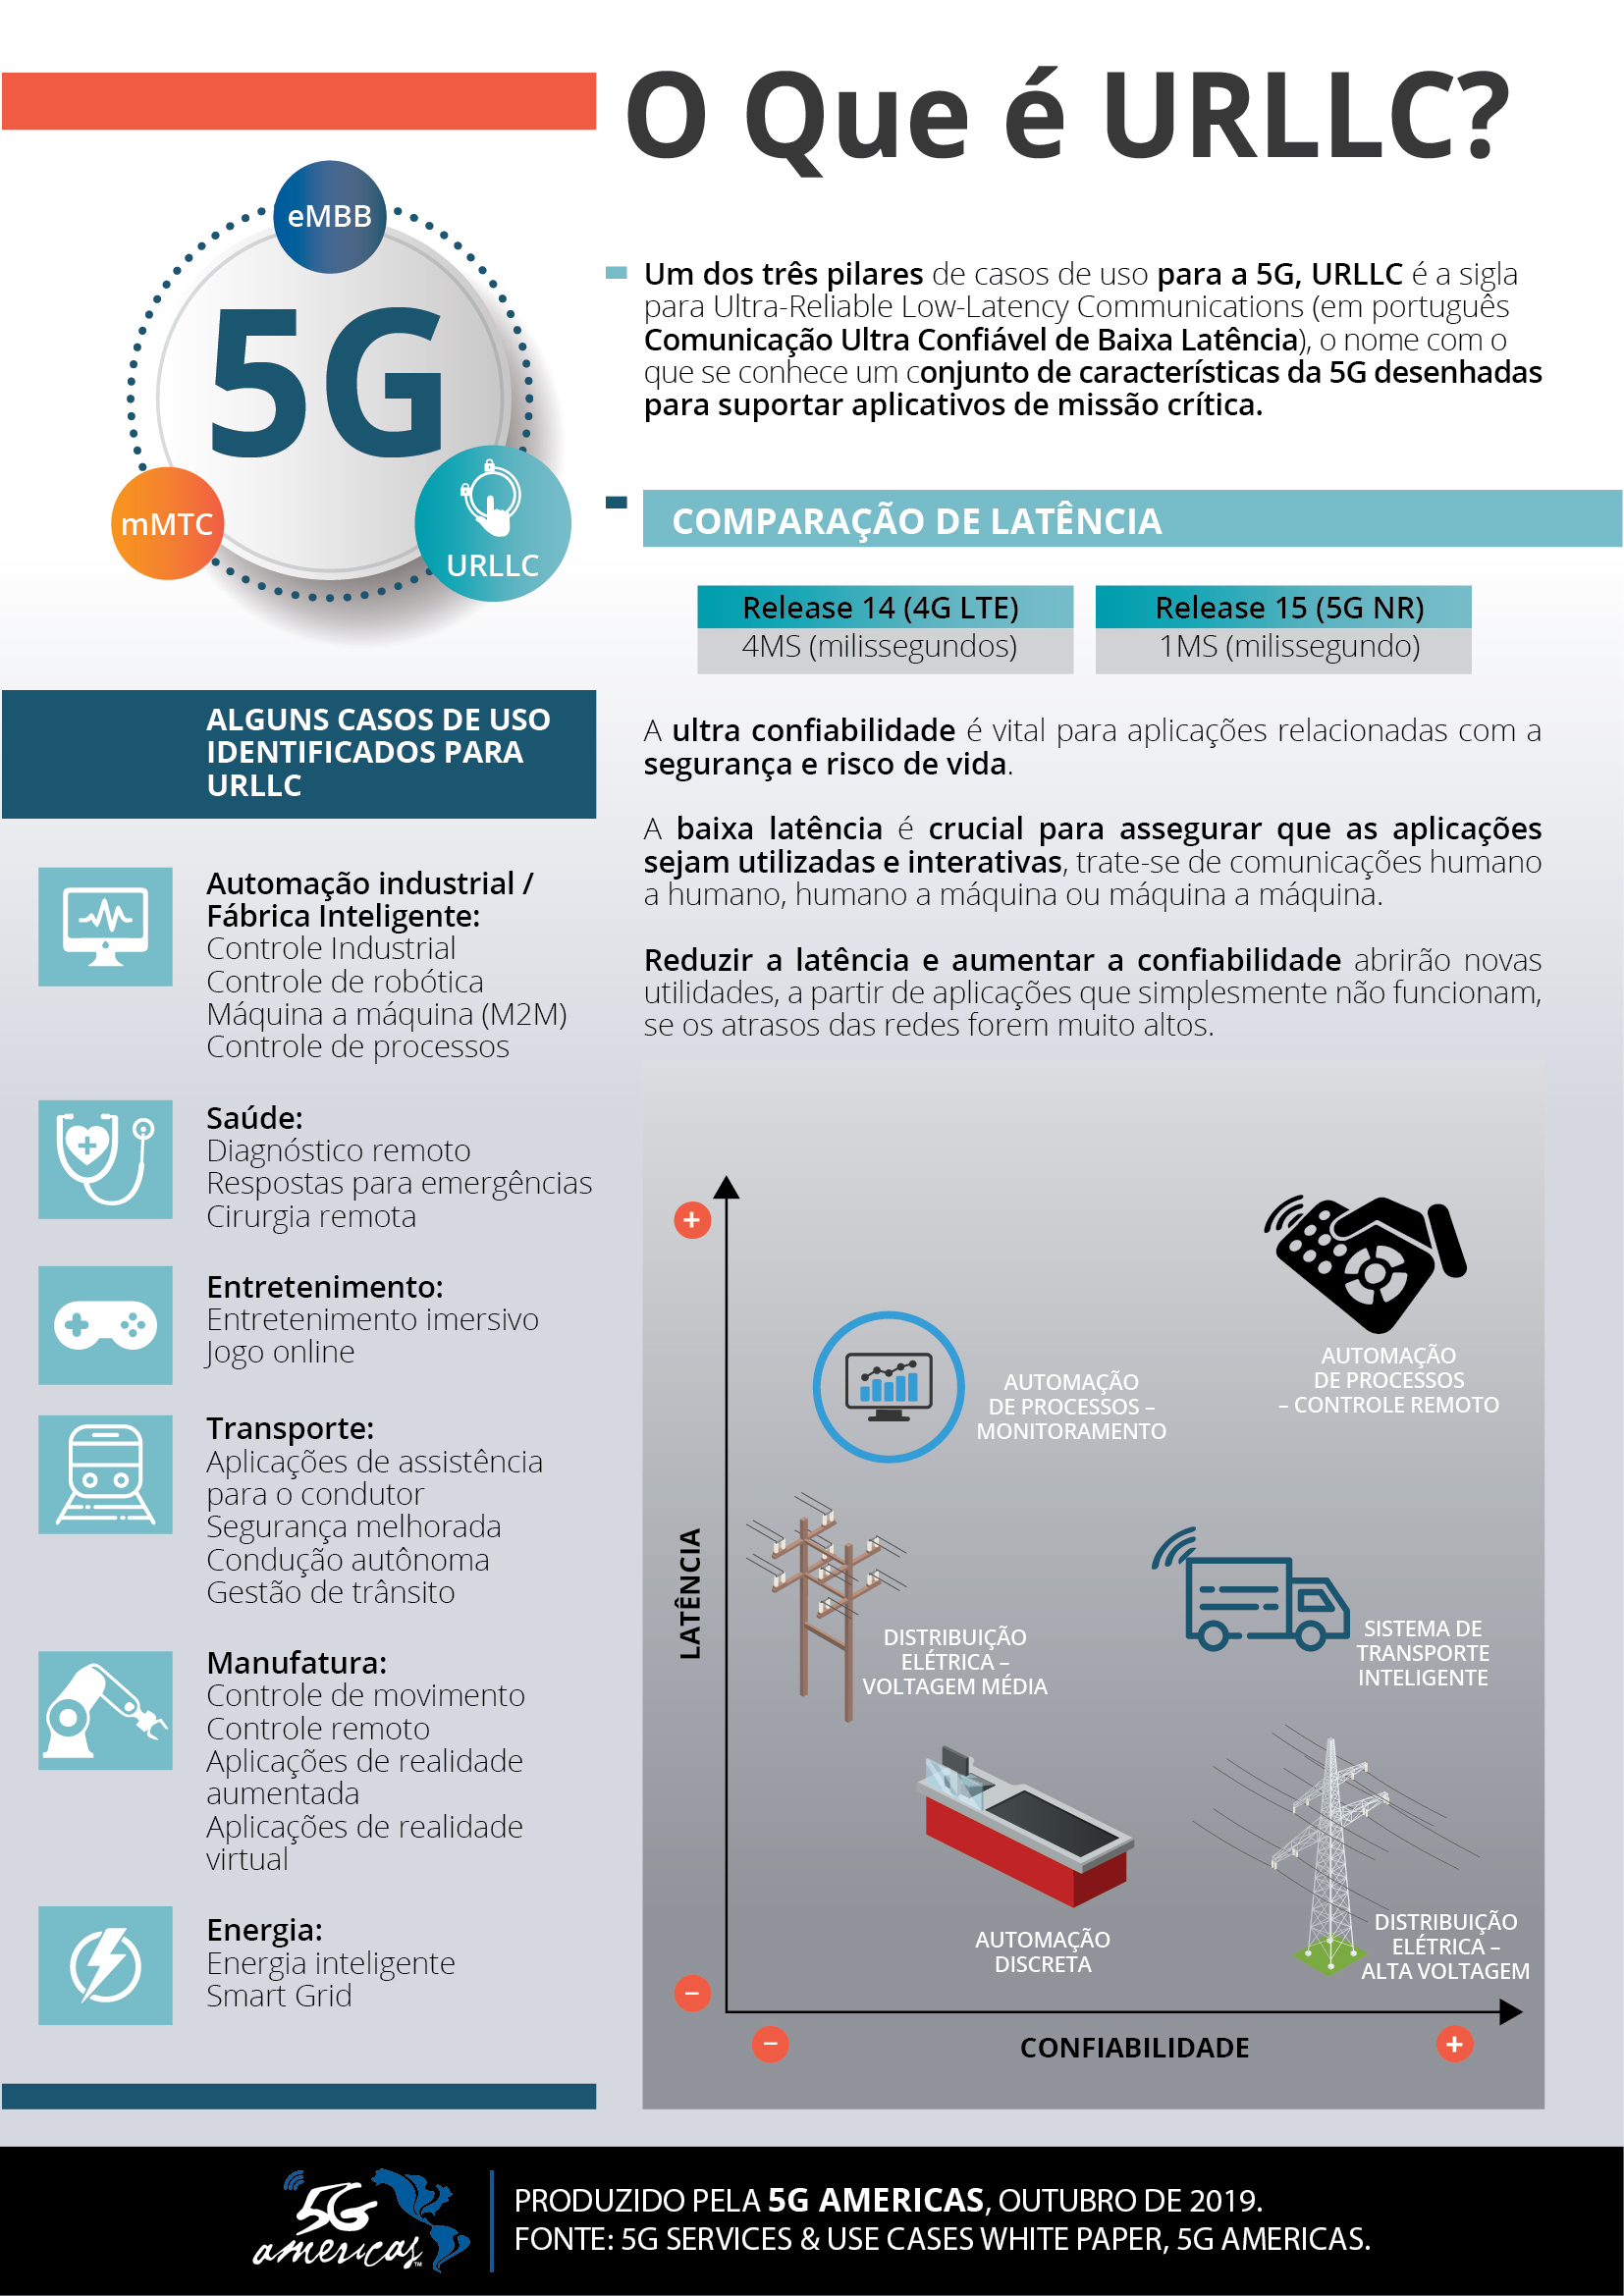 5g network will also impact public safety and medical services